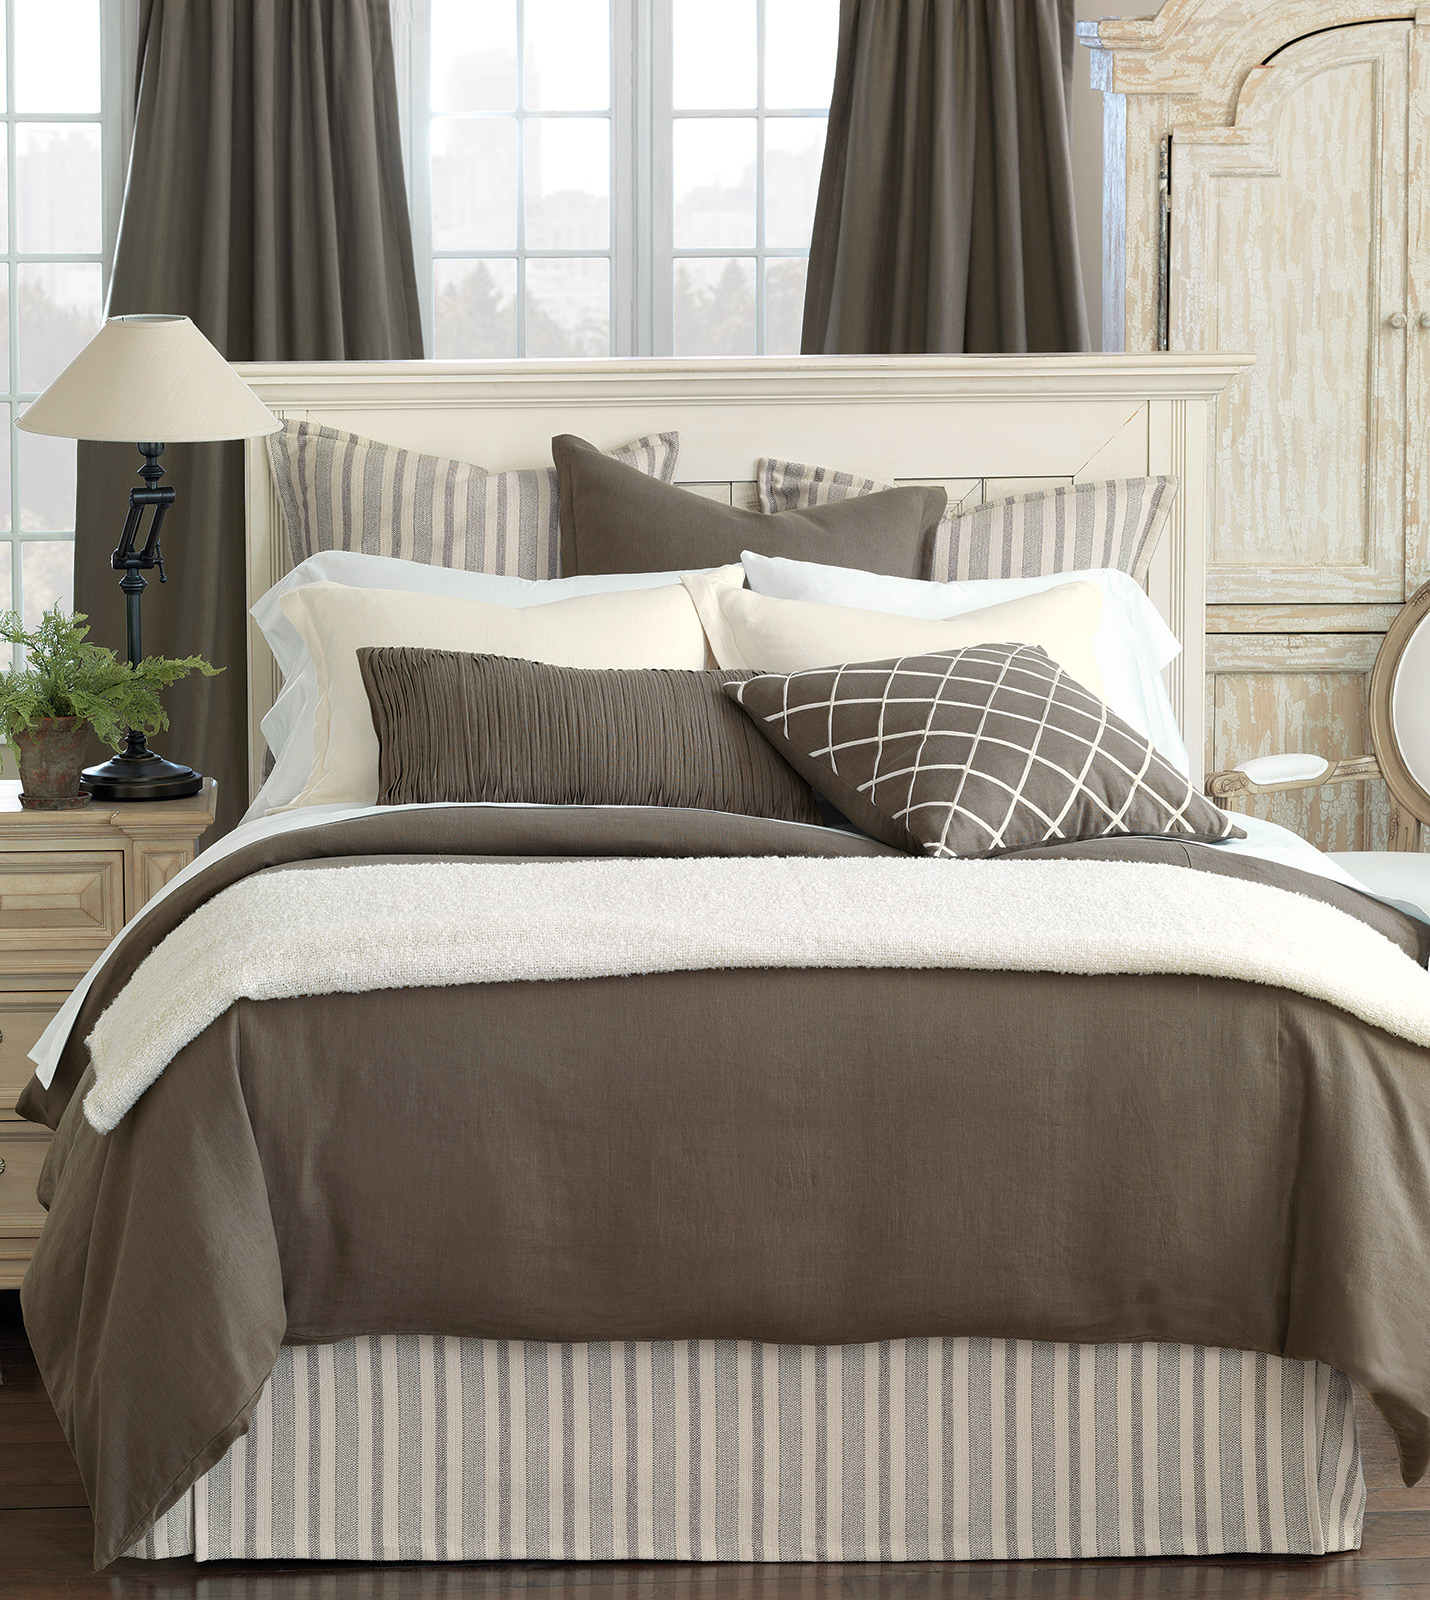 Classic Bedding Luxury Bedding By Eastern Accents - Breeze Classic Linen